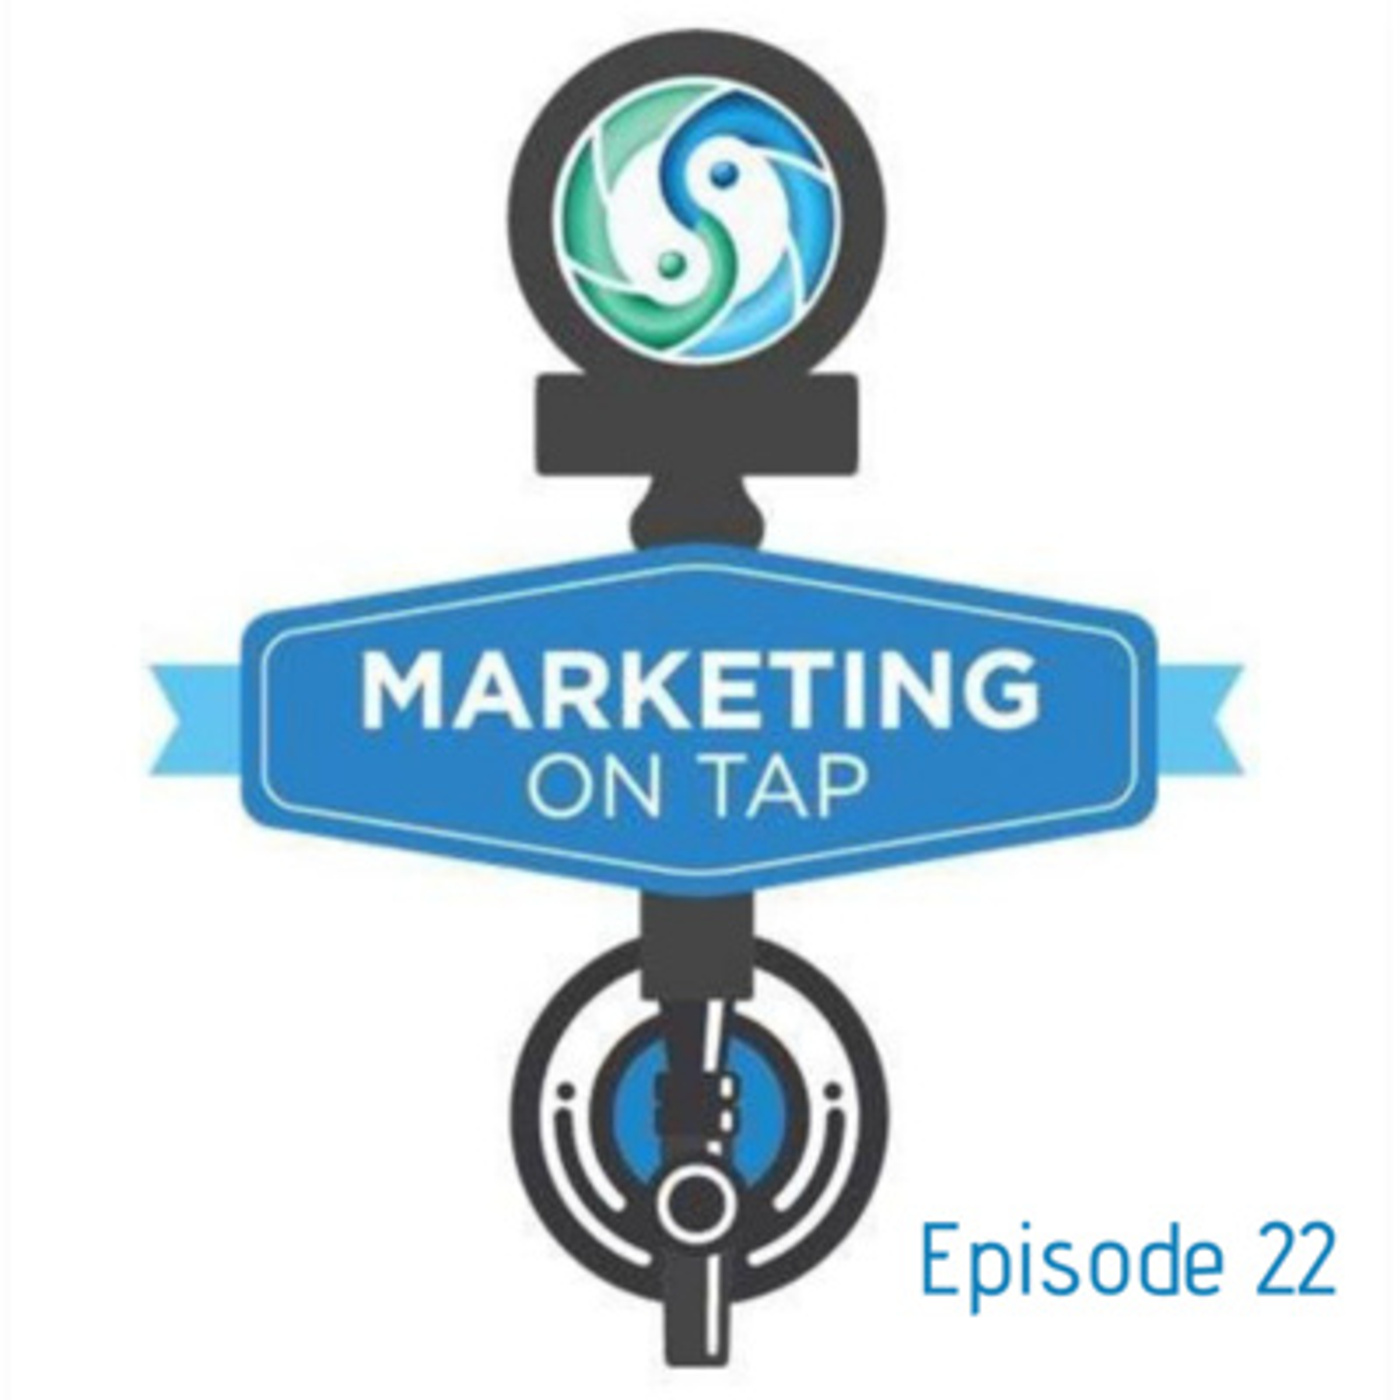 Episode 22: Loyalty Programs, Business Pivots, and Craft Beer Marketing